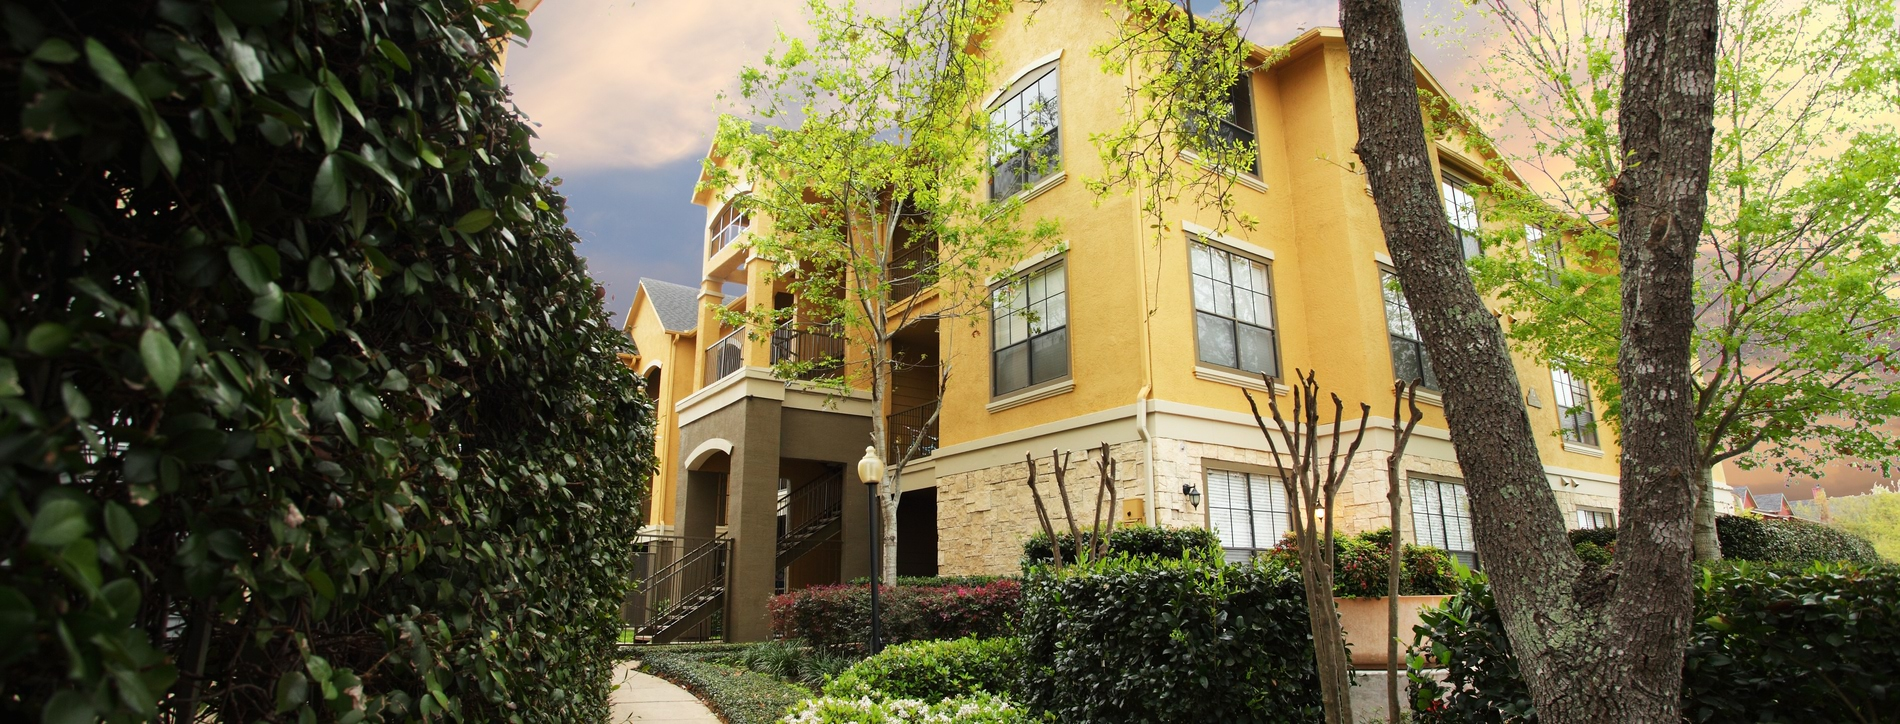 apartments for rent in houston, tx | westend - home